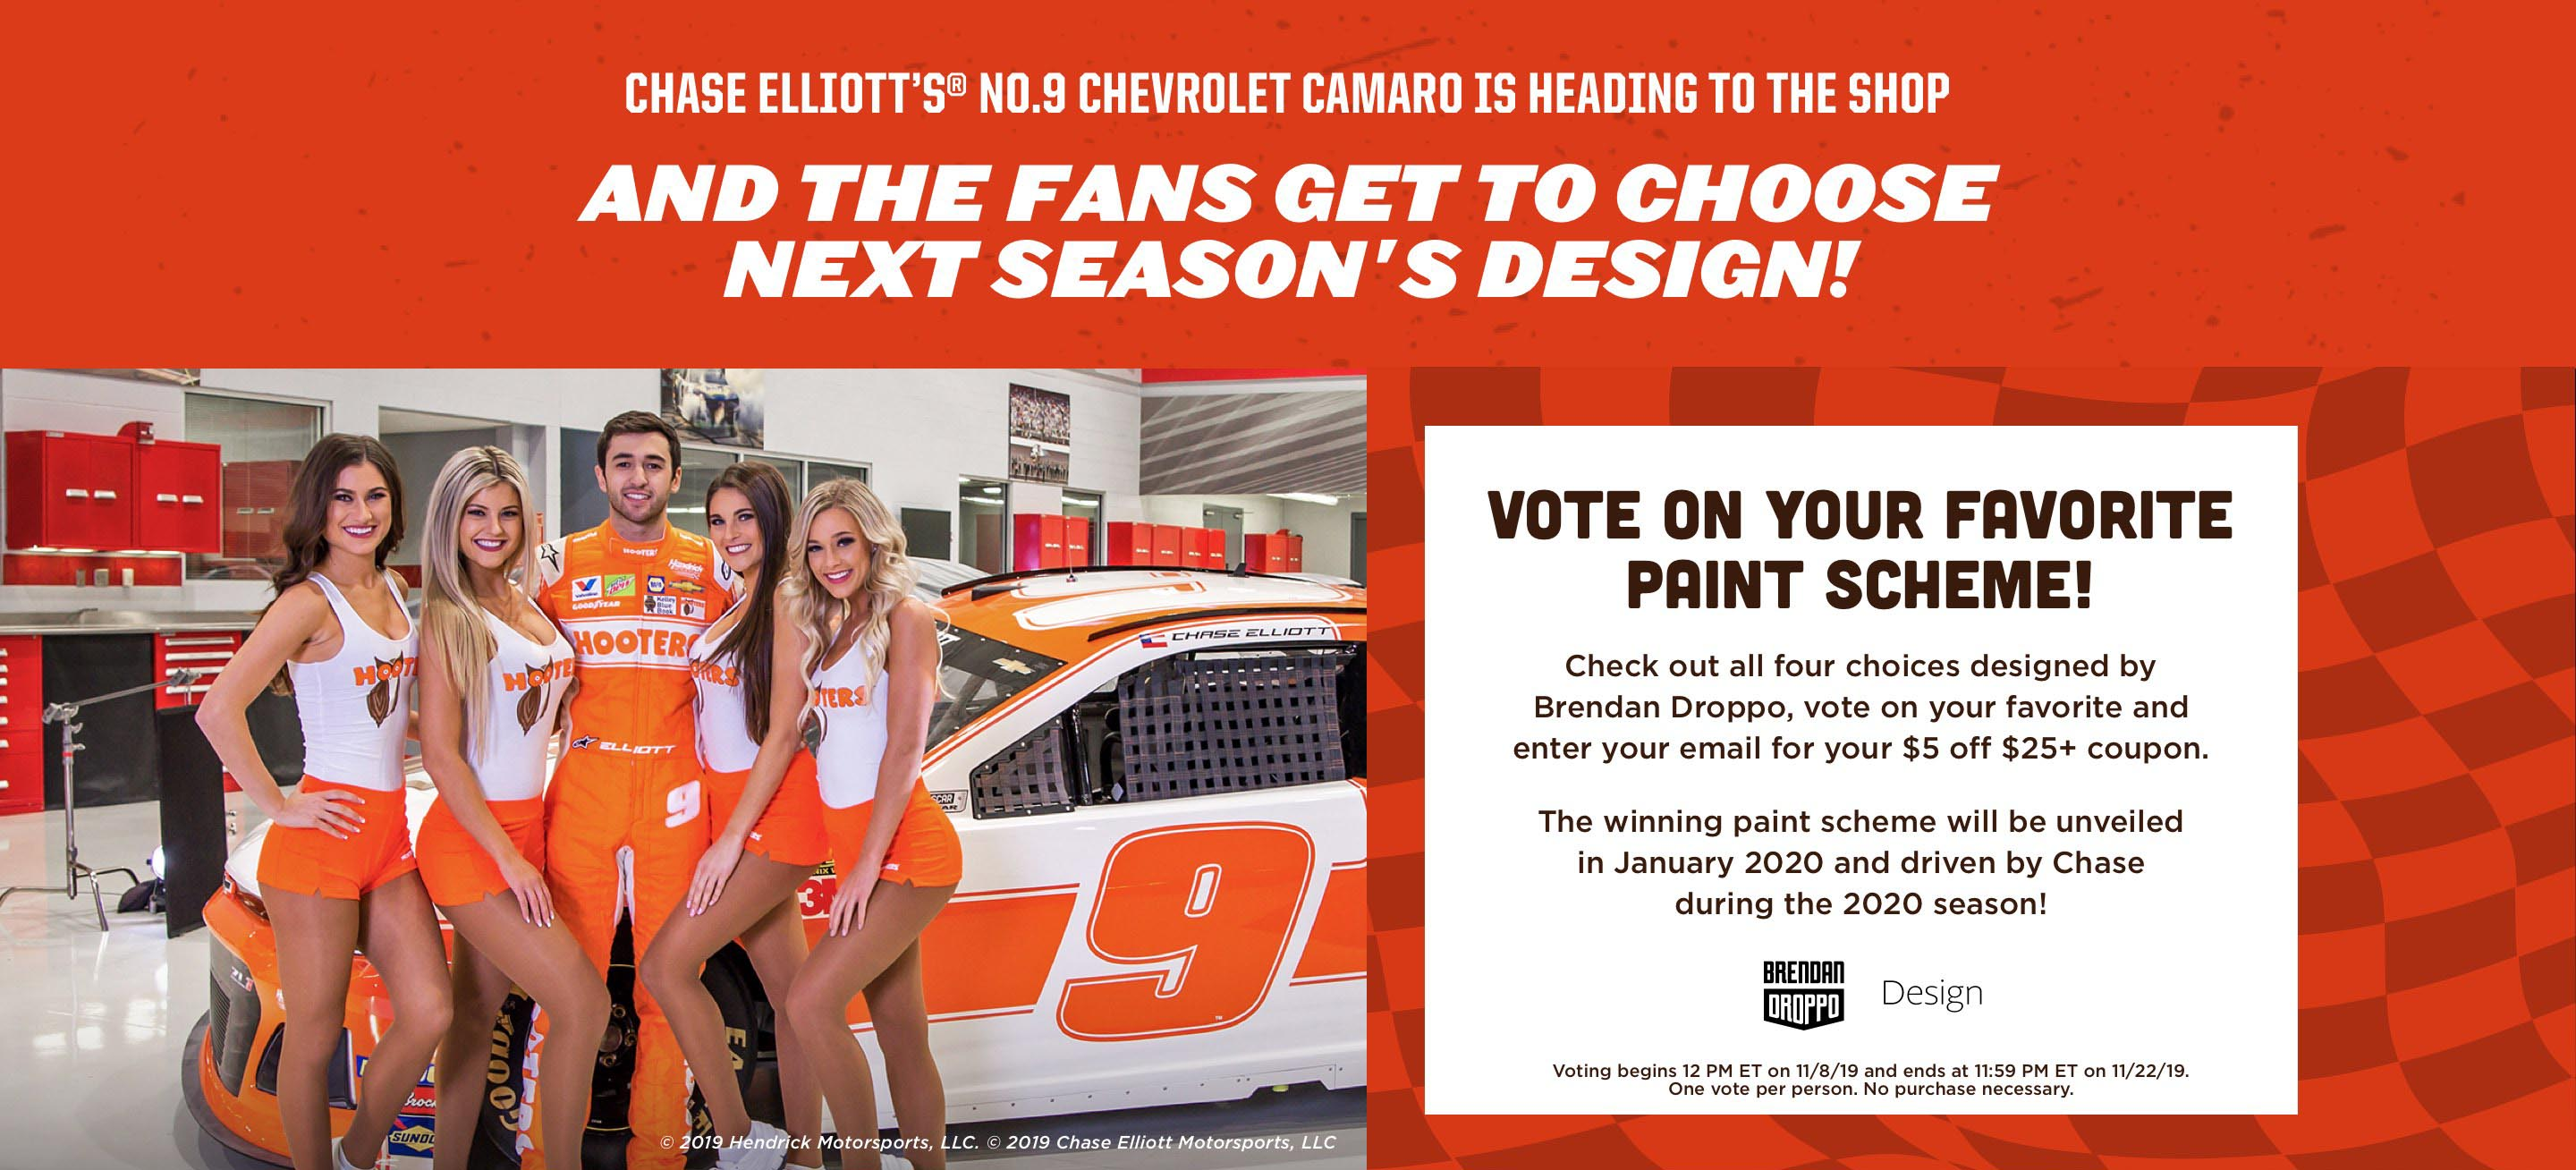 Vote on your favorite paint scheme! Check out all four choices designed by Brendan Droppo, vote on your favorite and enter your email for your $5 off $25+ coupon.  The winning paint scheme will be unveiled in January 2020 and driven by Chase during the 2020 season!